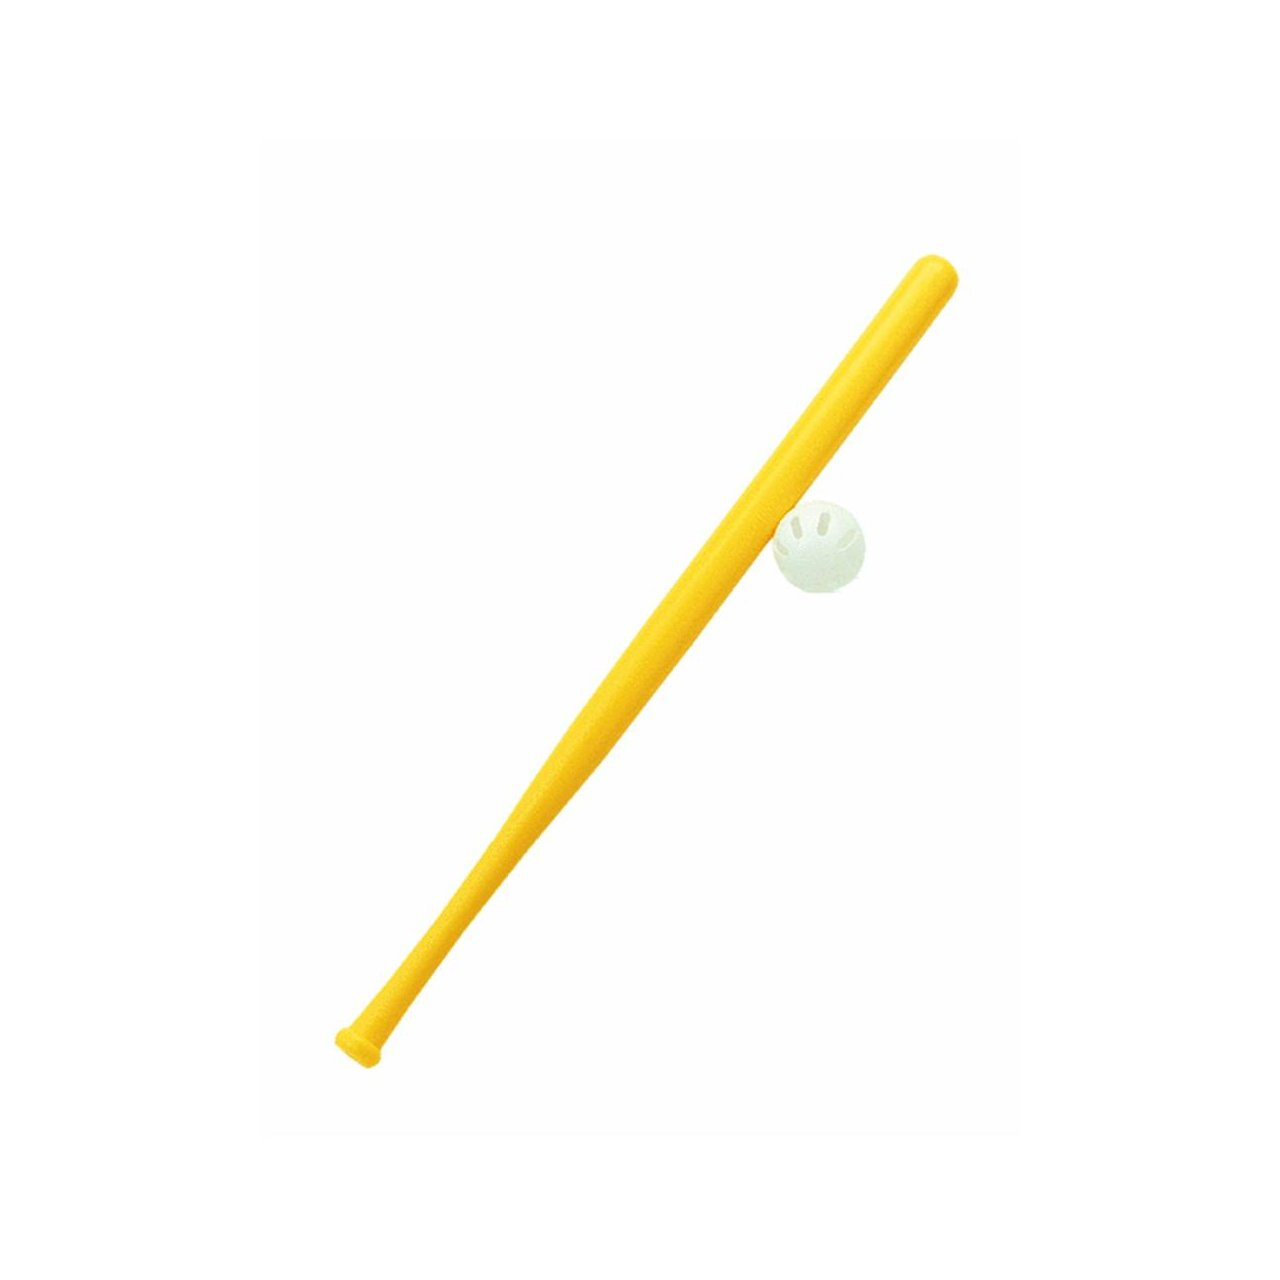 1280x1280 Cheap Wiffle Ball Bat, Find Wiffle Ball Bat Deals On Line